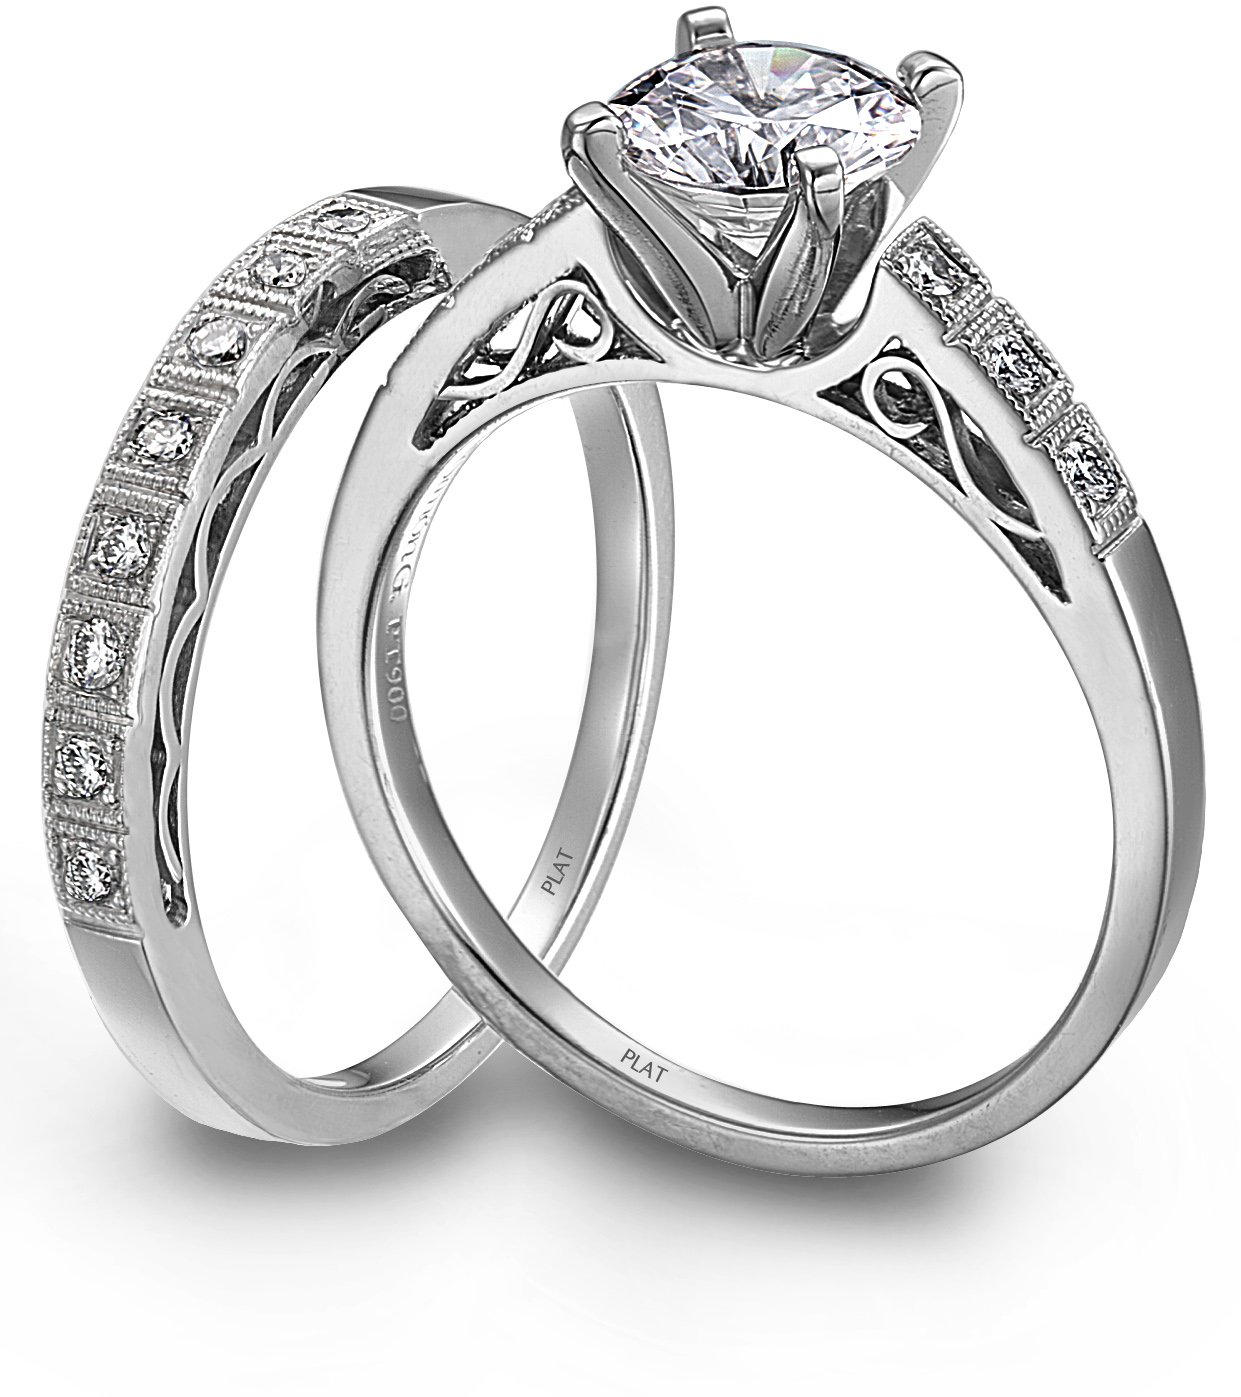 womans wedding ring - Wedding Ring Pics